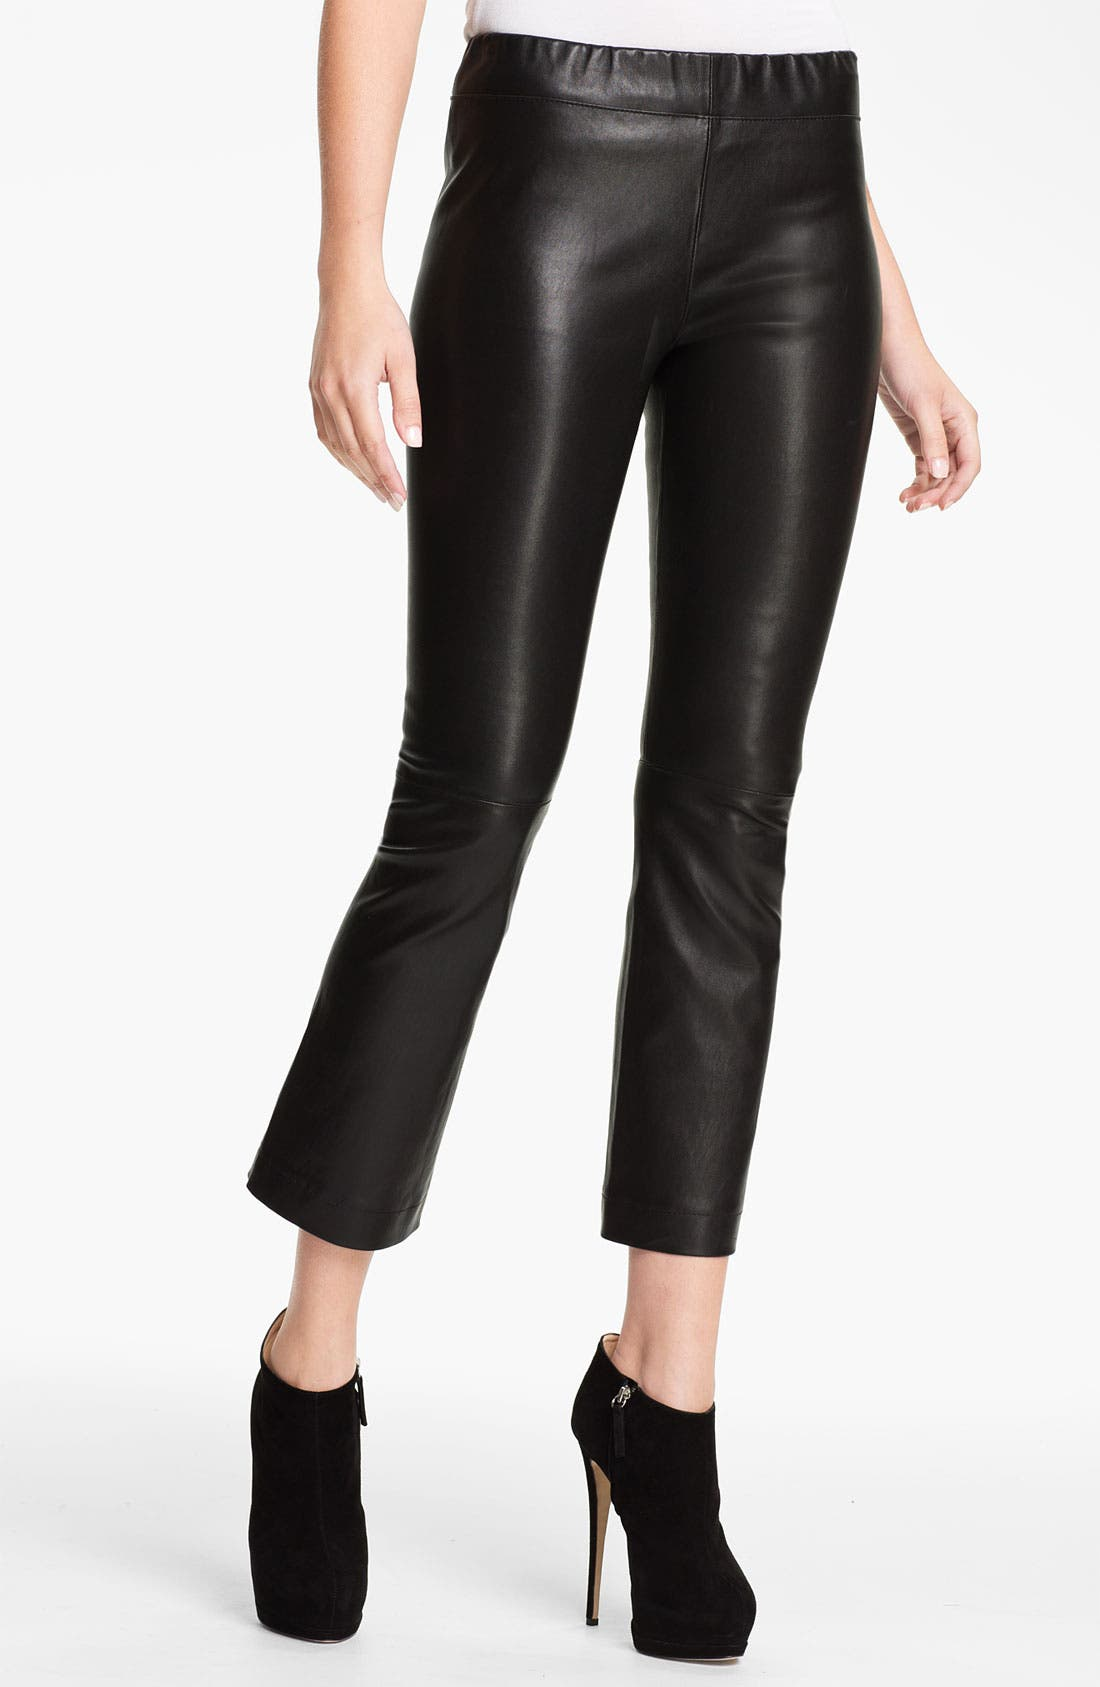 Alternate Image 1 Selected - Elizabeth and James 'Allen' Crop Bootcut Leather Pants